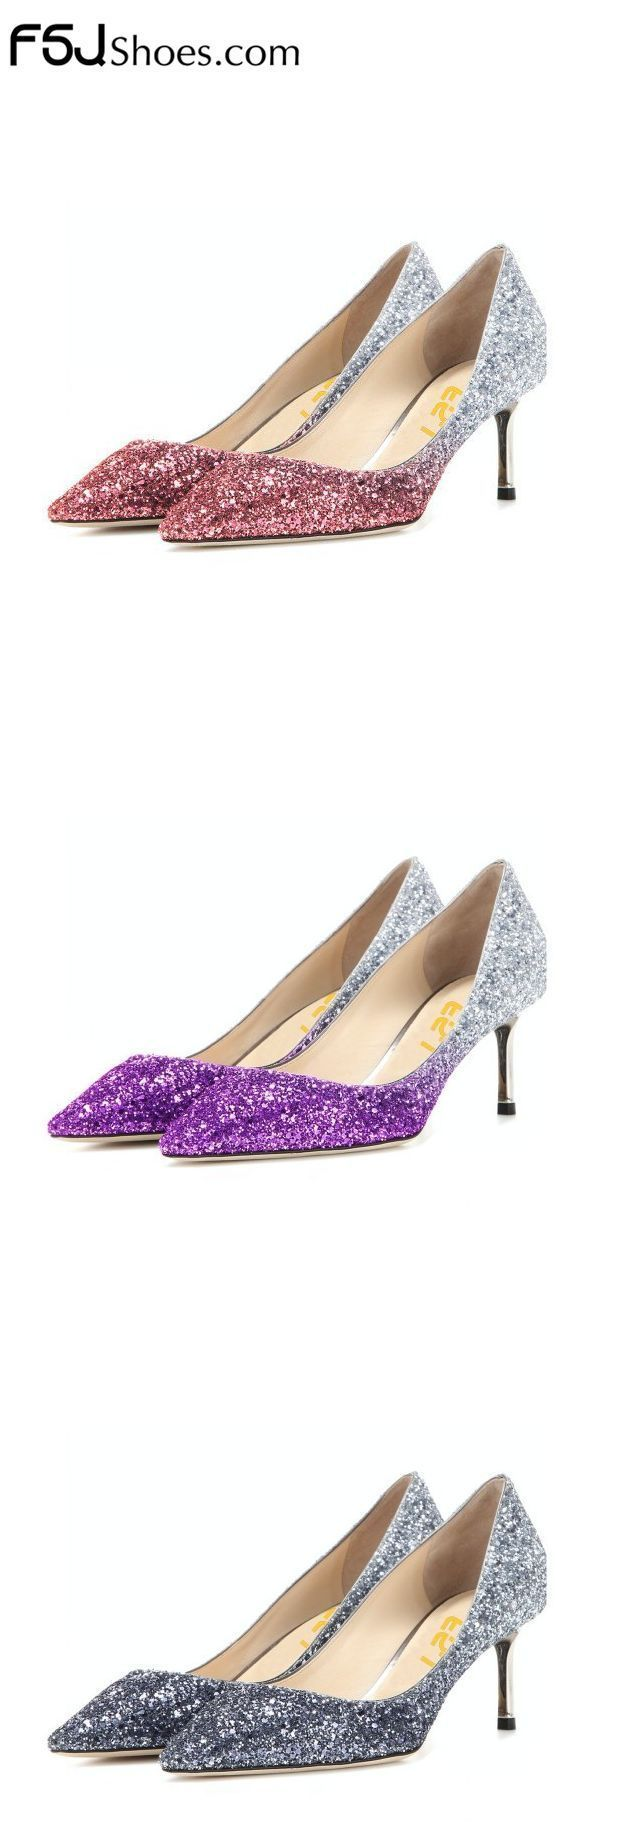 Purple dress with shoes  Womenus Style Pumps and Duorsay Heels Winter Fashion Elegant Wedding